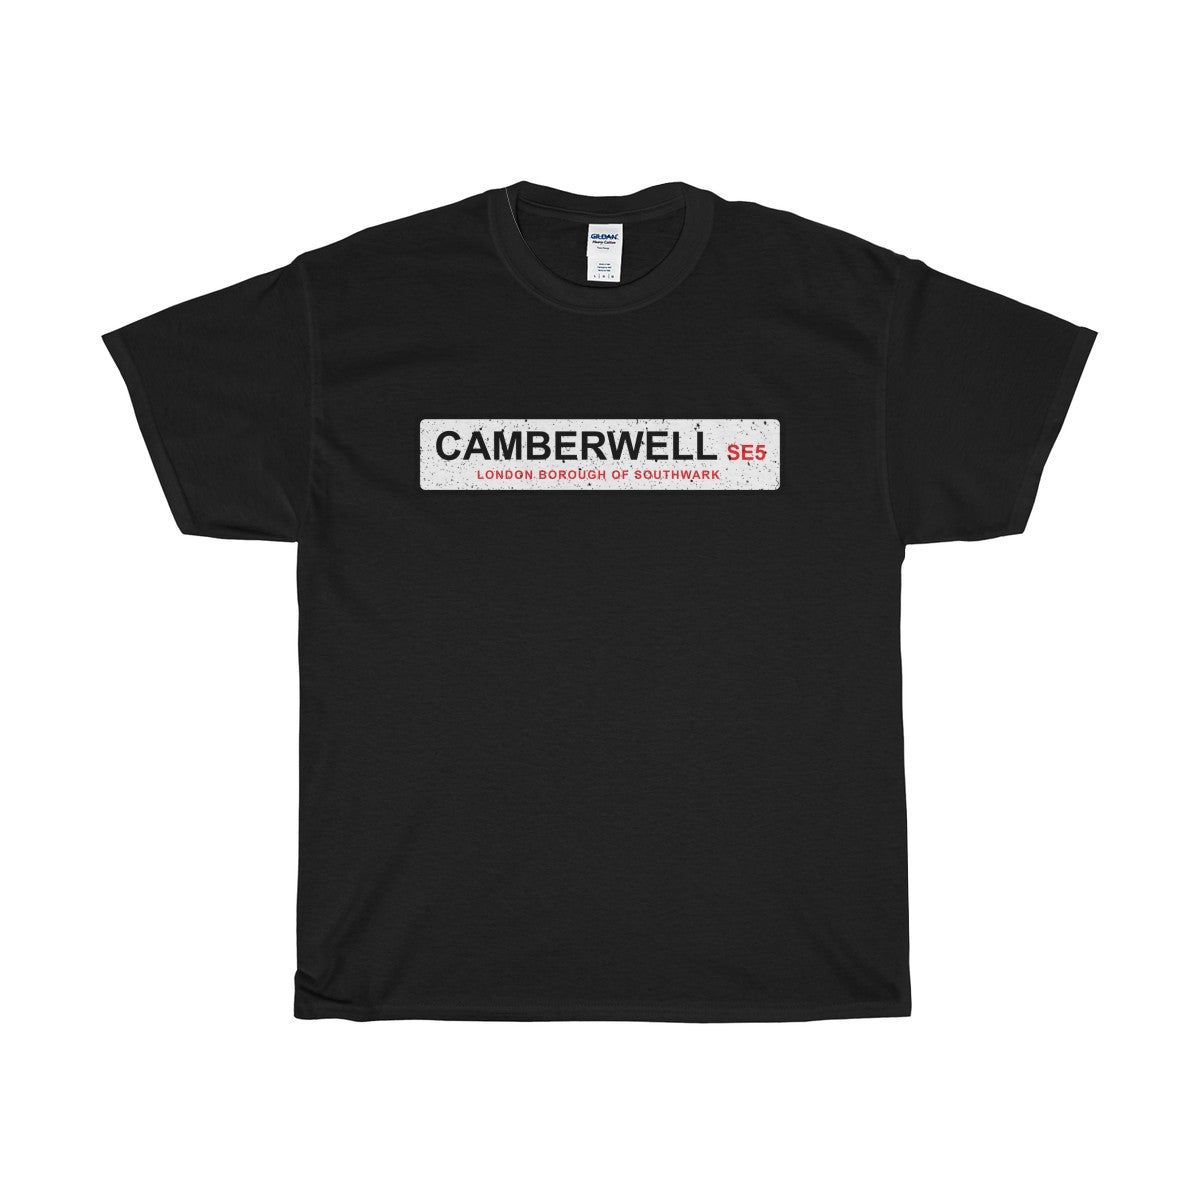 Camberwell Road Sign T-Shirt